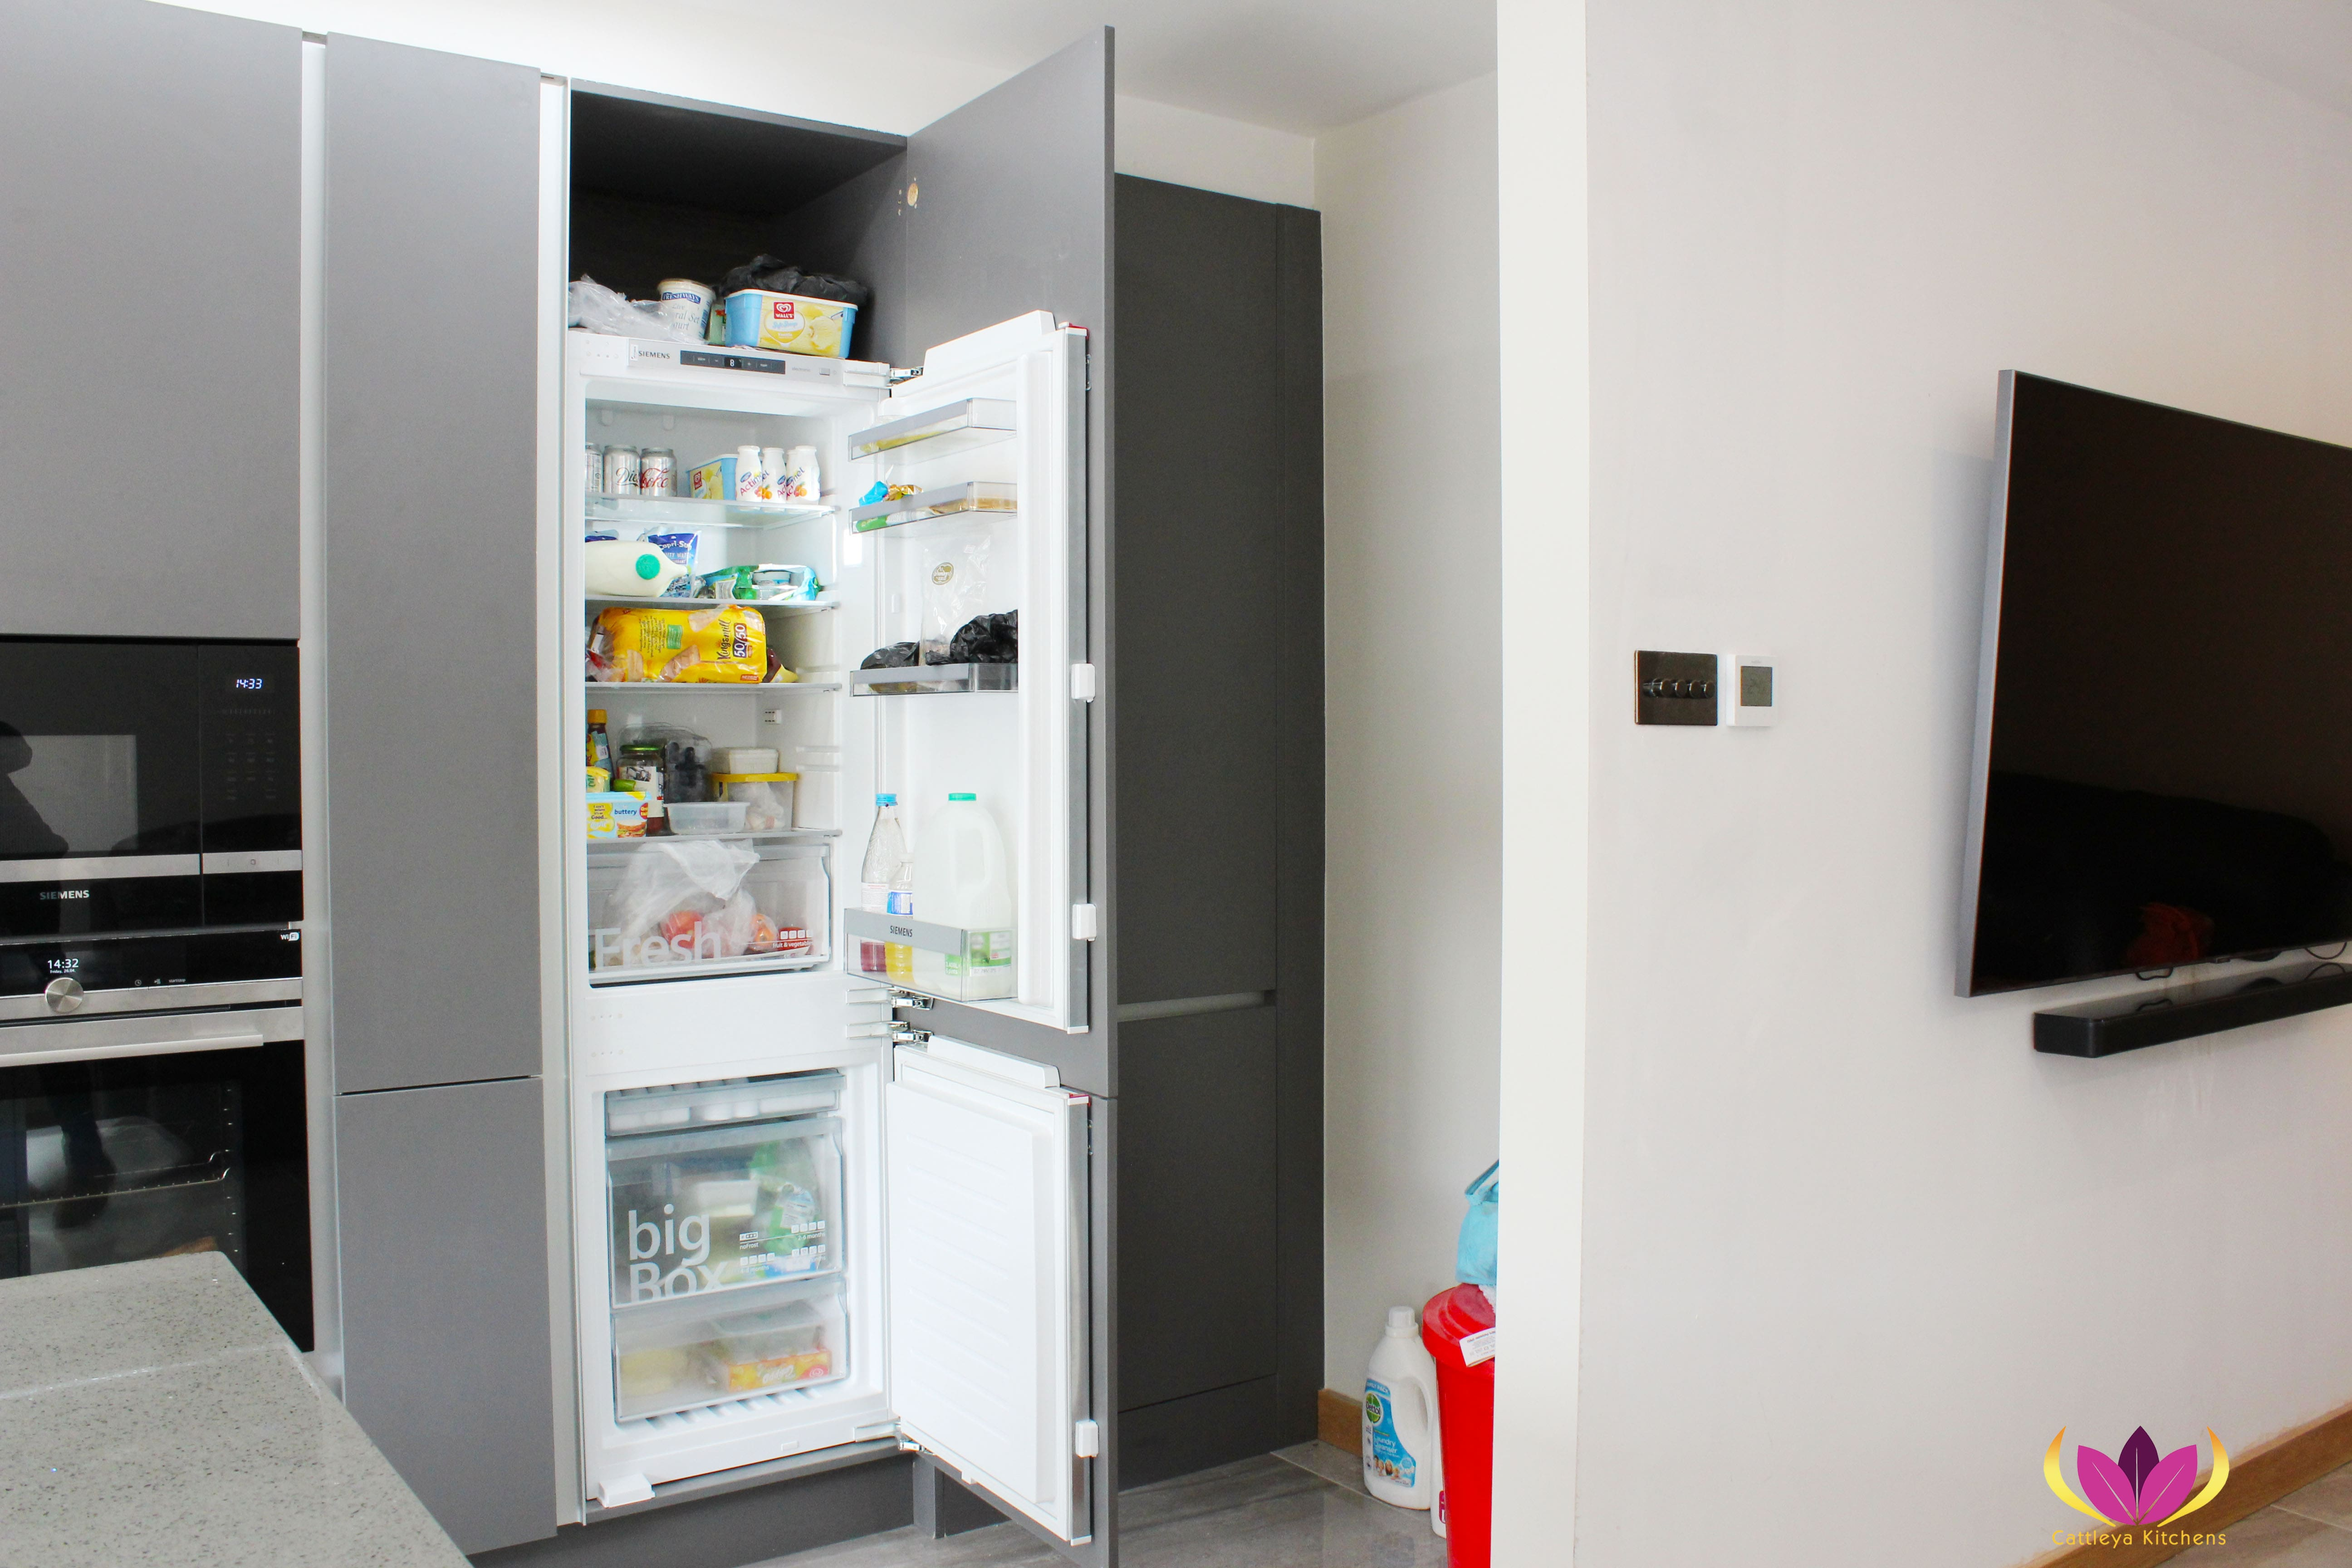 Refrigerator hidden inside gray cabinet Perivale Finished Kitchen Project